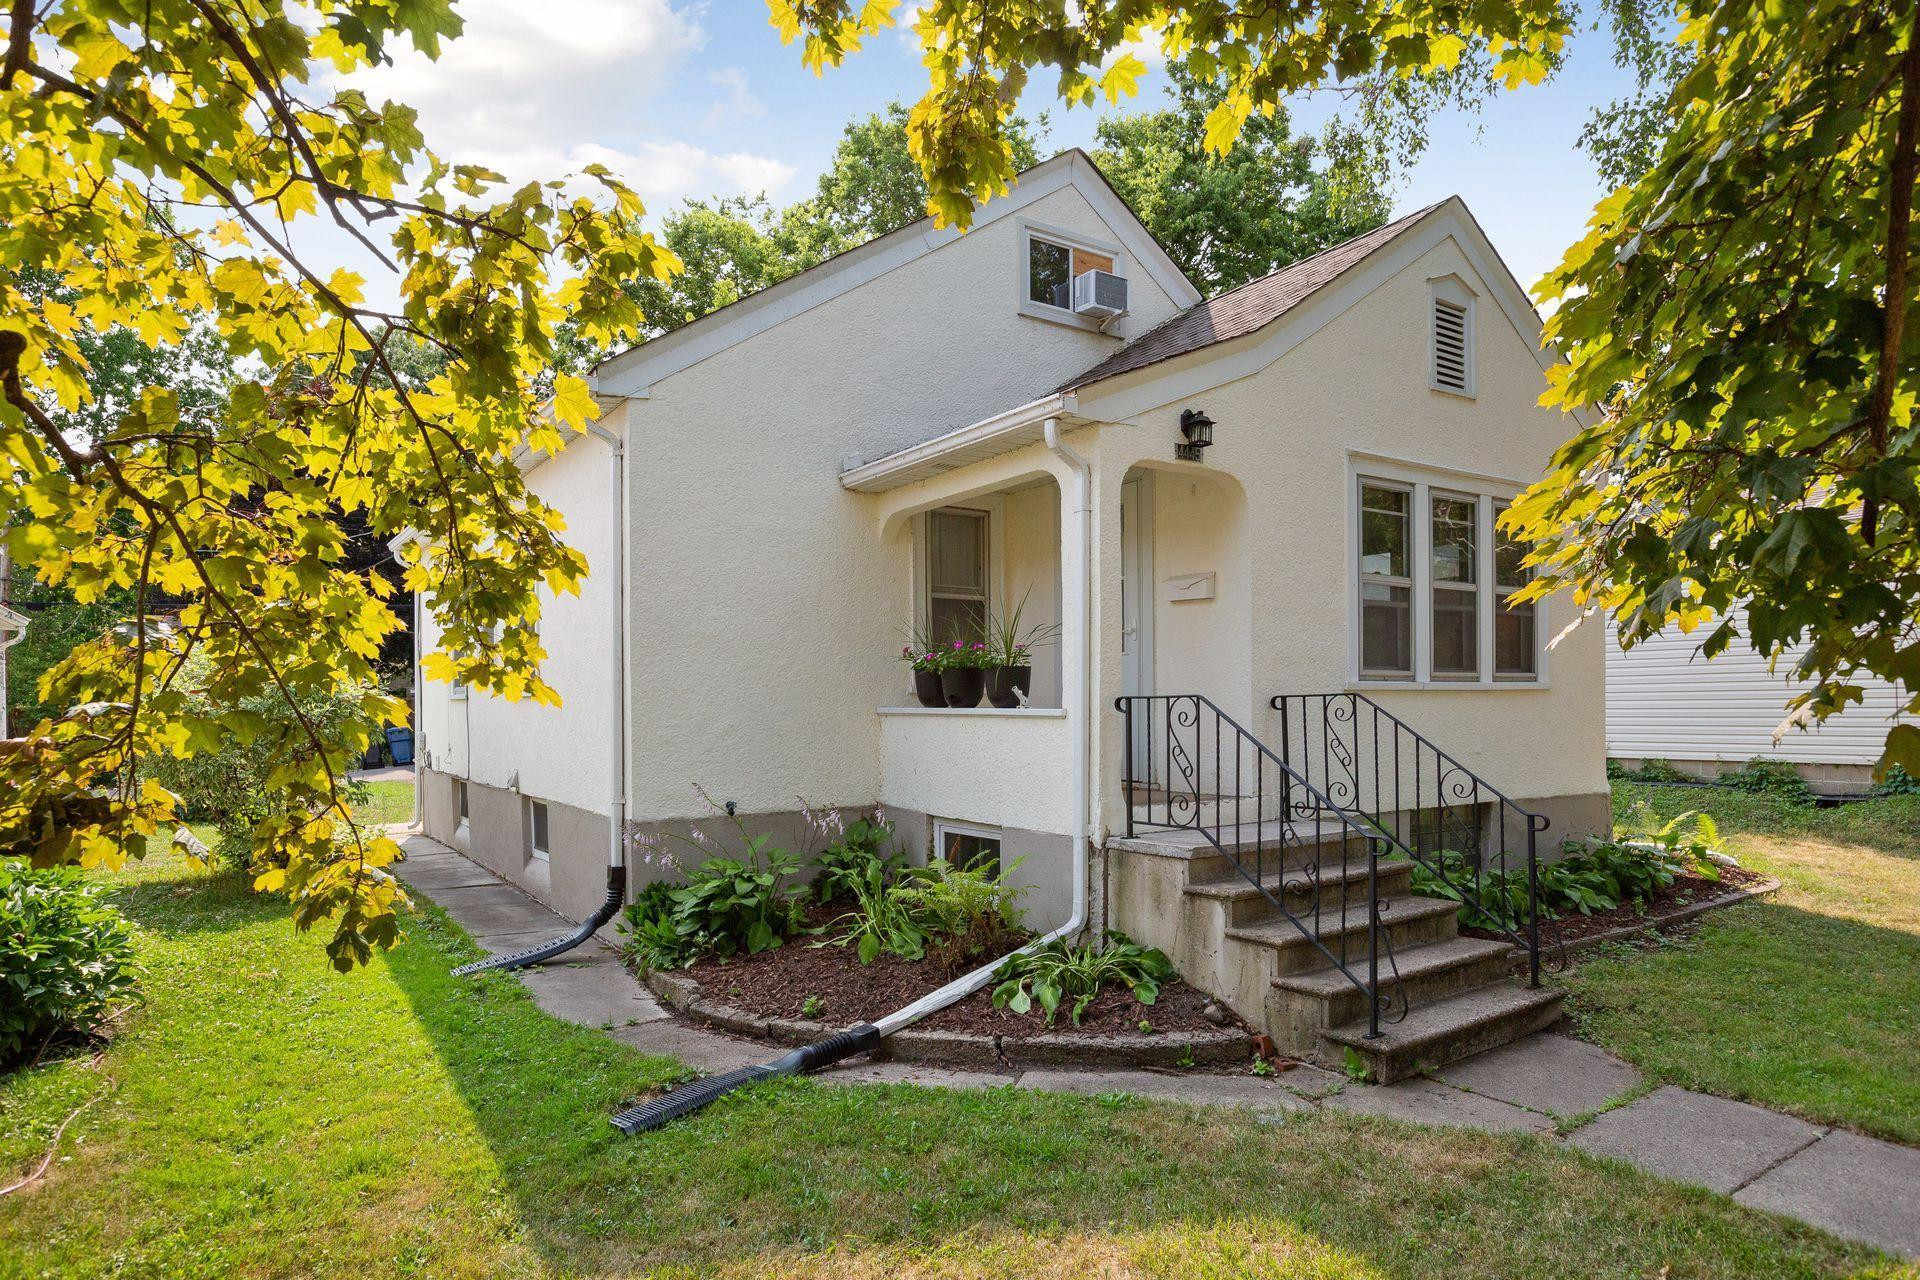 Welcome home to 4445 31st Ave S in the Ericsson Neighborhood!